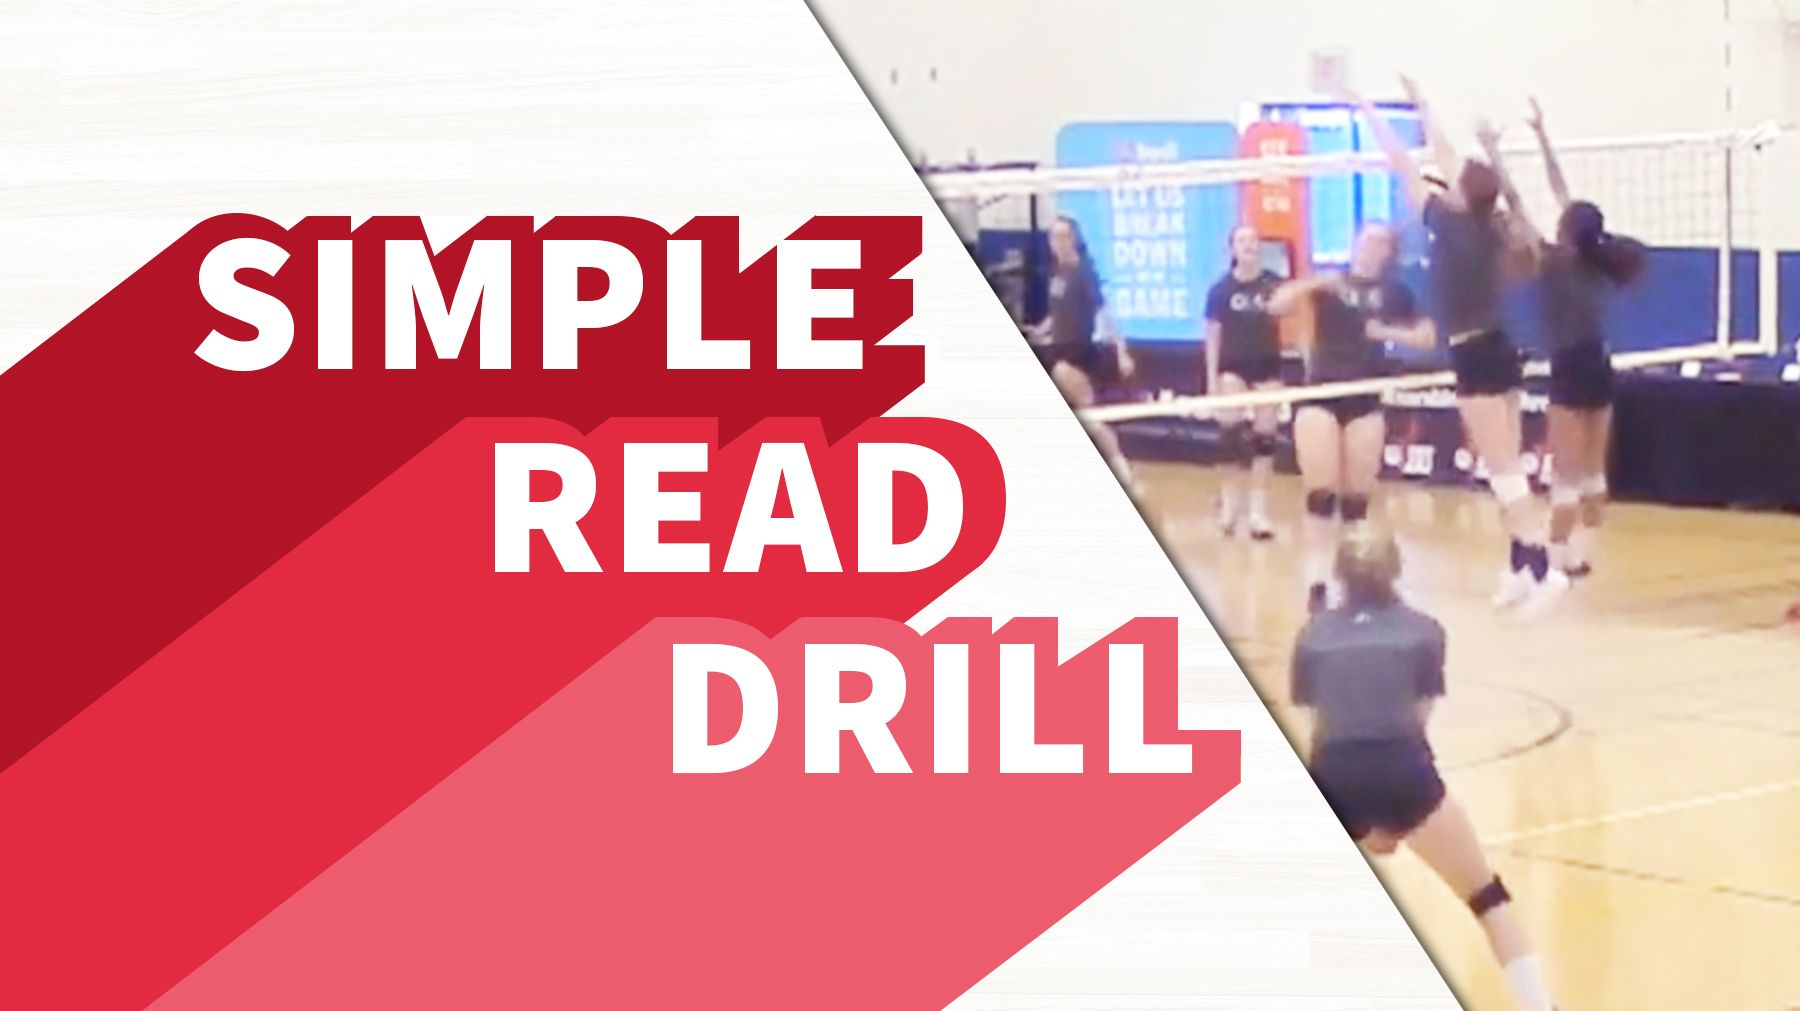 Simple Read Drill The Art Of Coaching Volleyball Coaching Volleyball Drill Volleyball Workouts